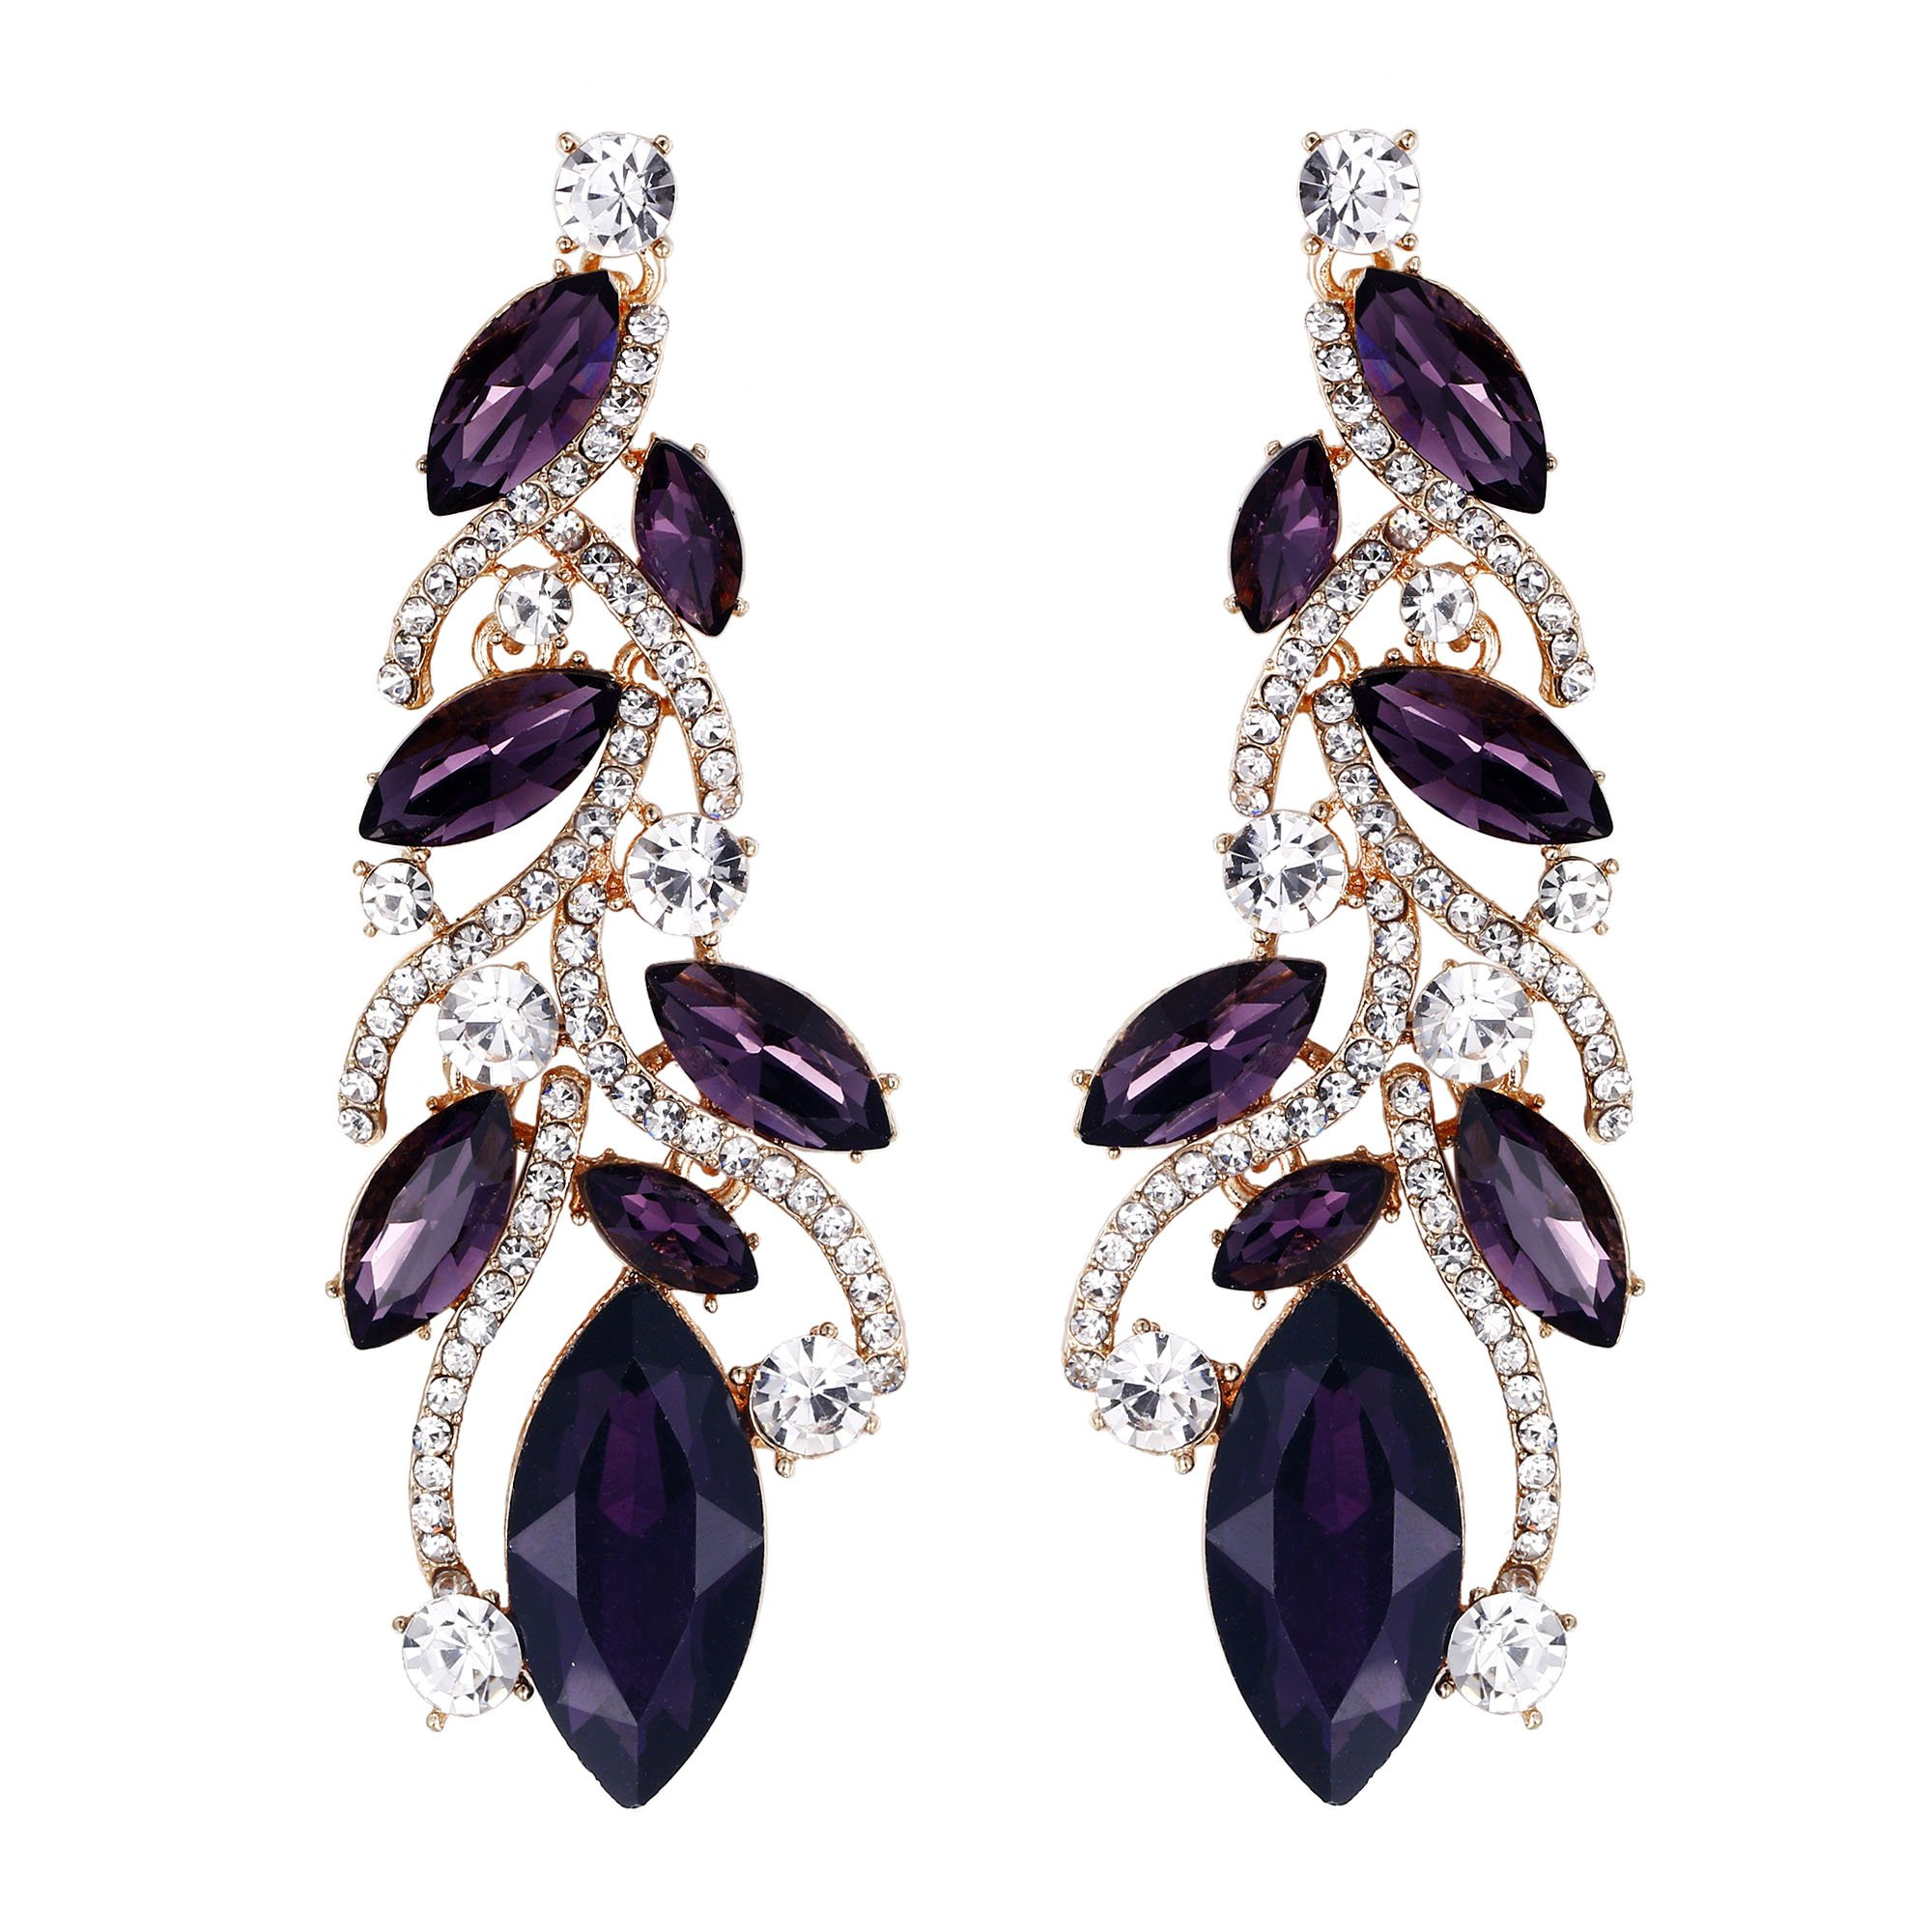 EVER FAITH Austrian Crystal Bohemia Bridal Leaf Dangle Earrings for Bride, Bridesmaid Purple Gold-Tone